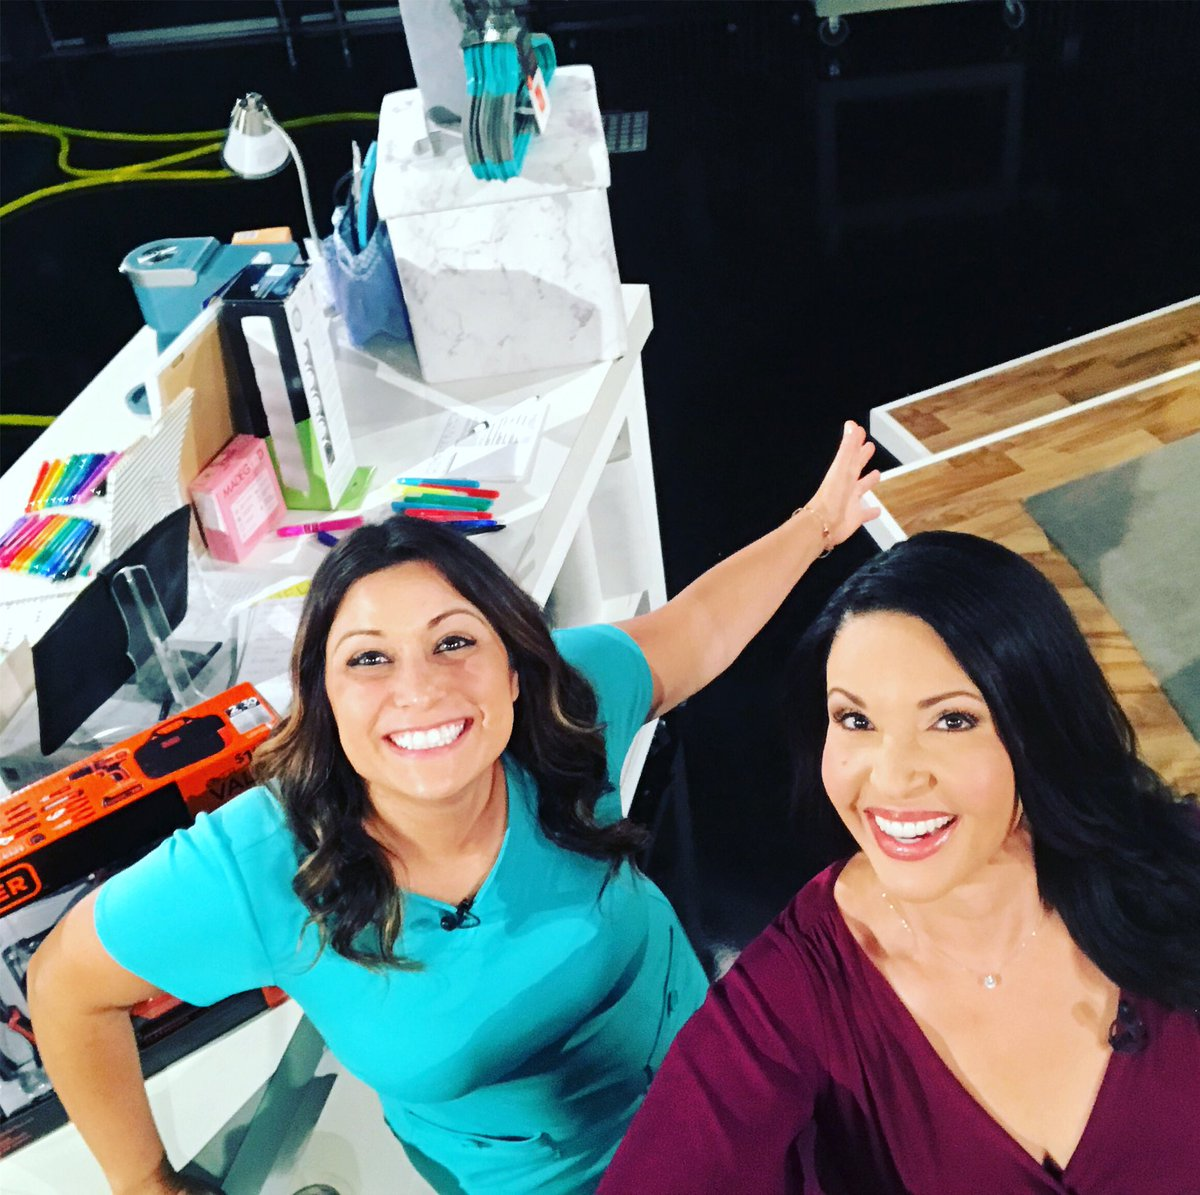 Having fun with lifestyle expert @limorsuss talking about the dorm essentials your college bound student needs. On @cbschicago